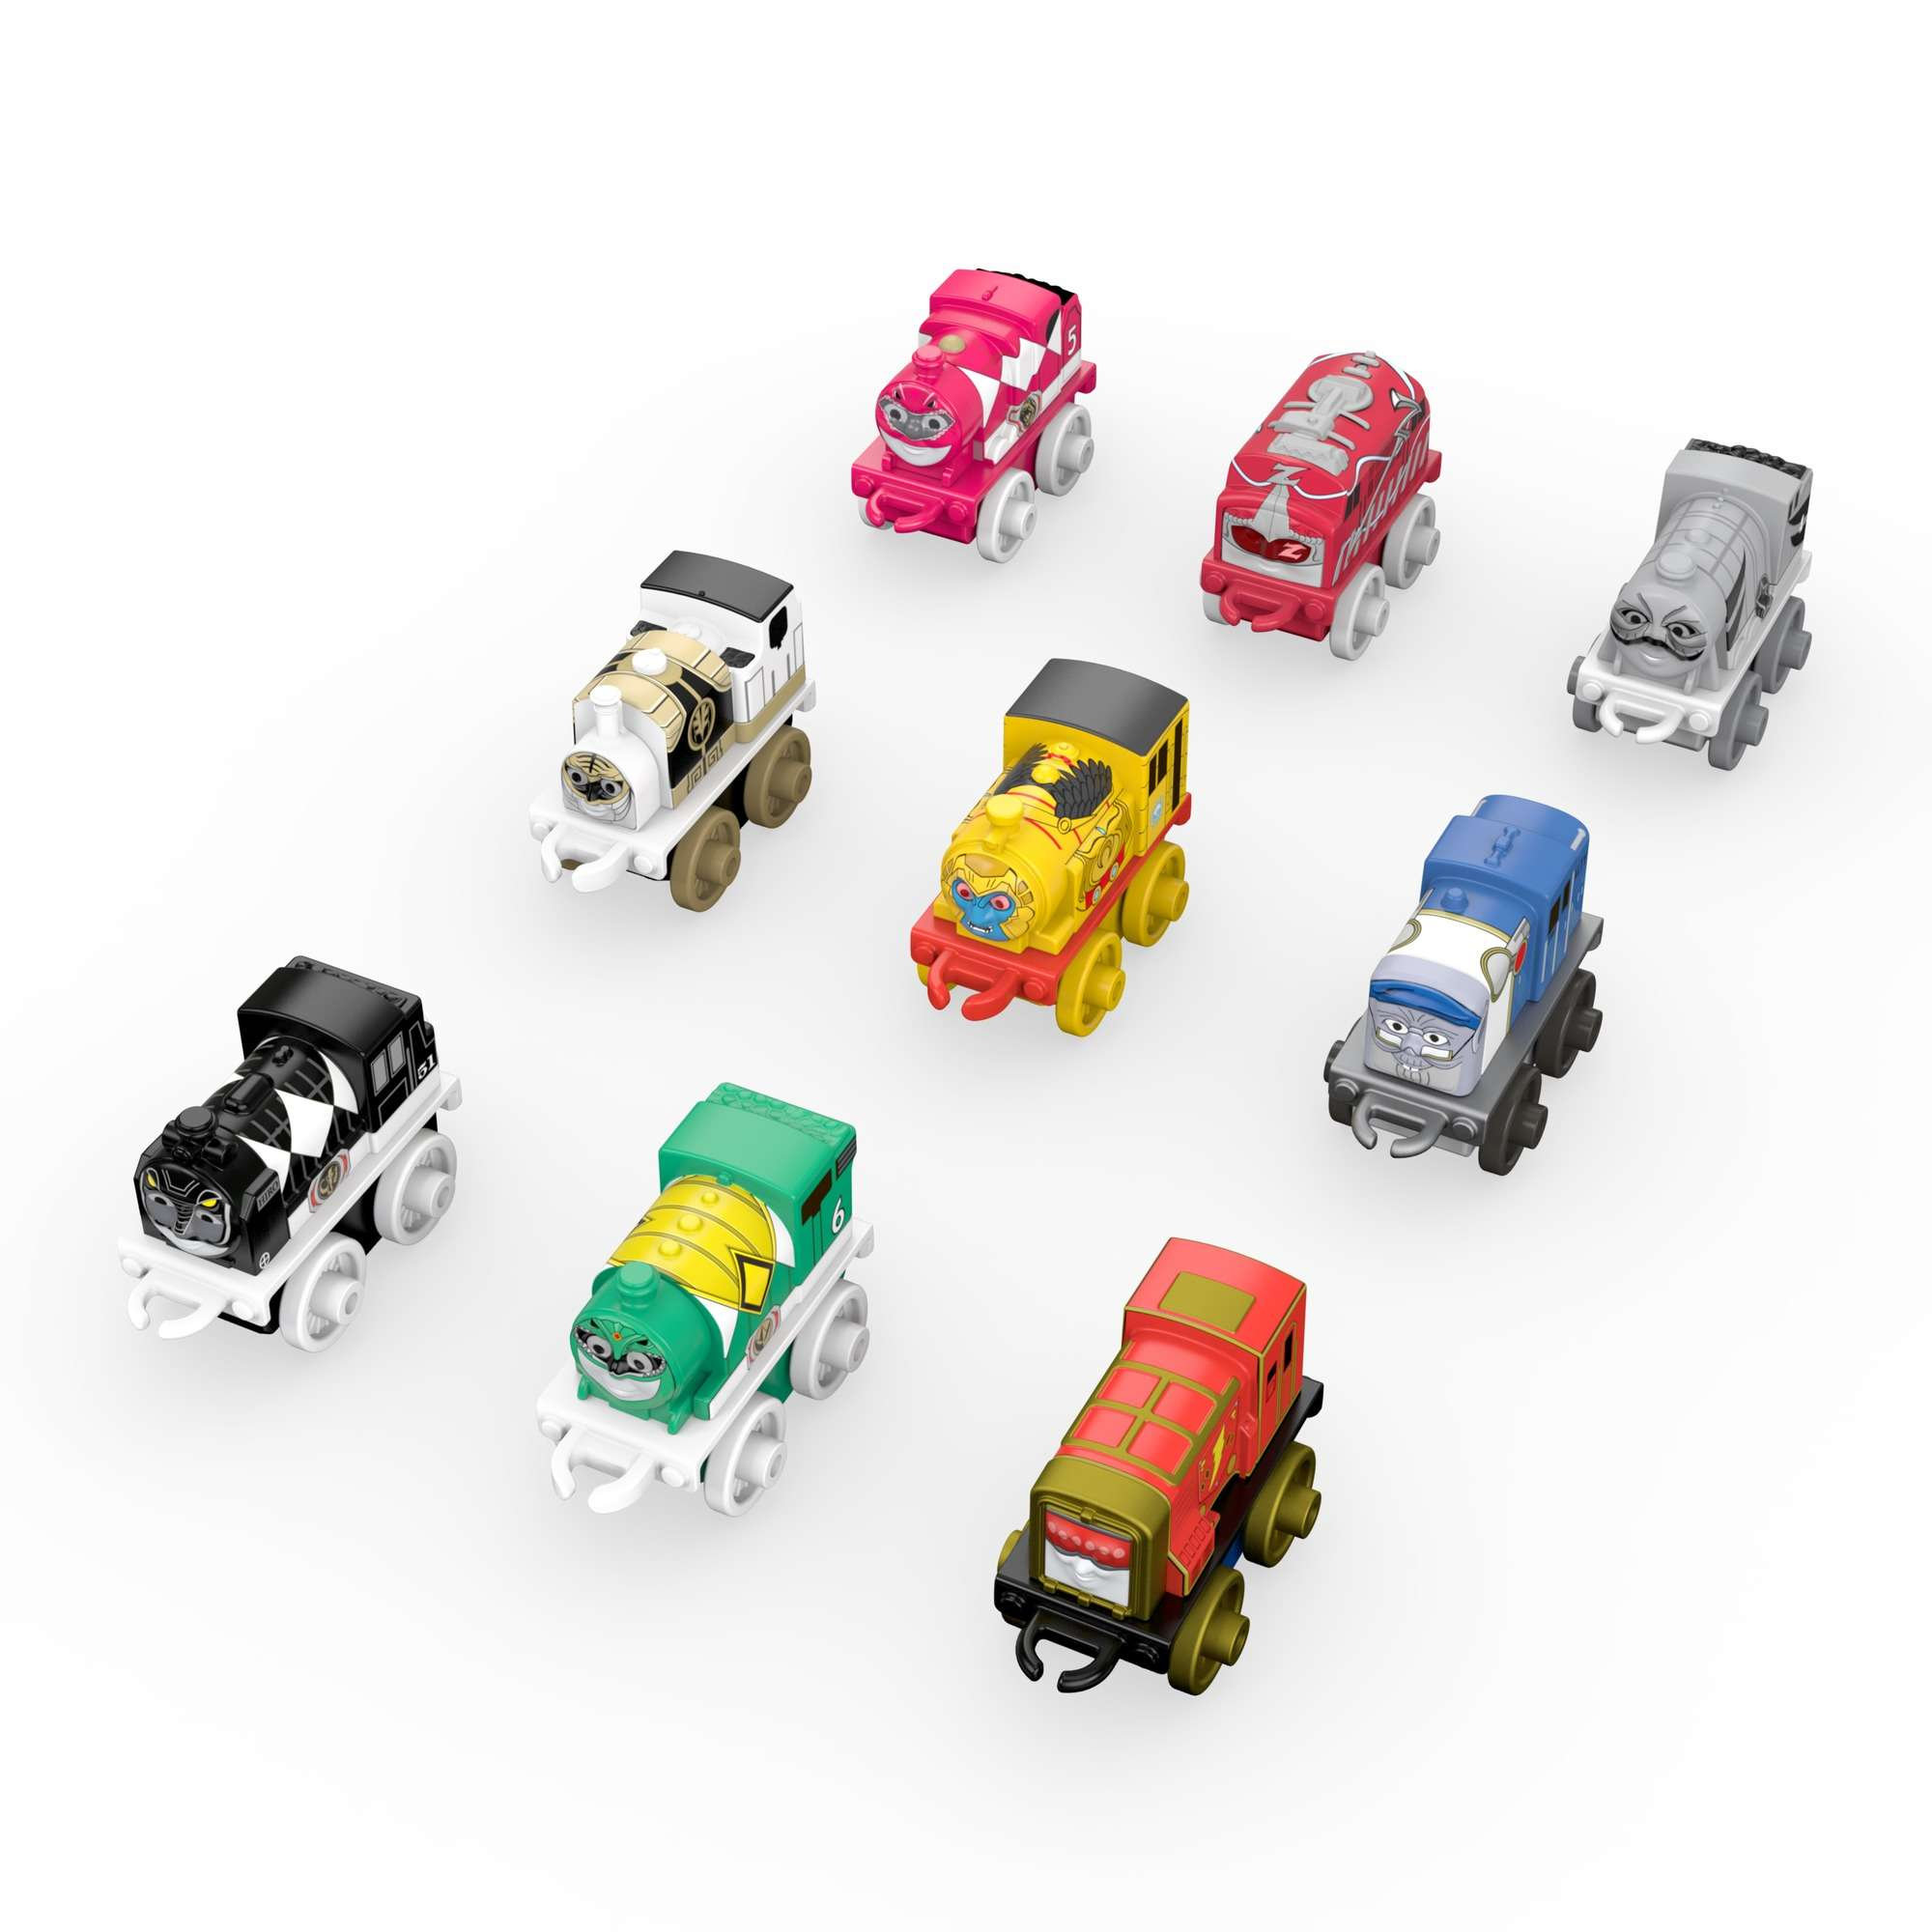 Thomas & Friends MINIS 9-Pack, Power Rangers